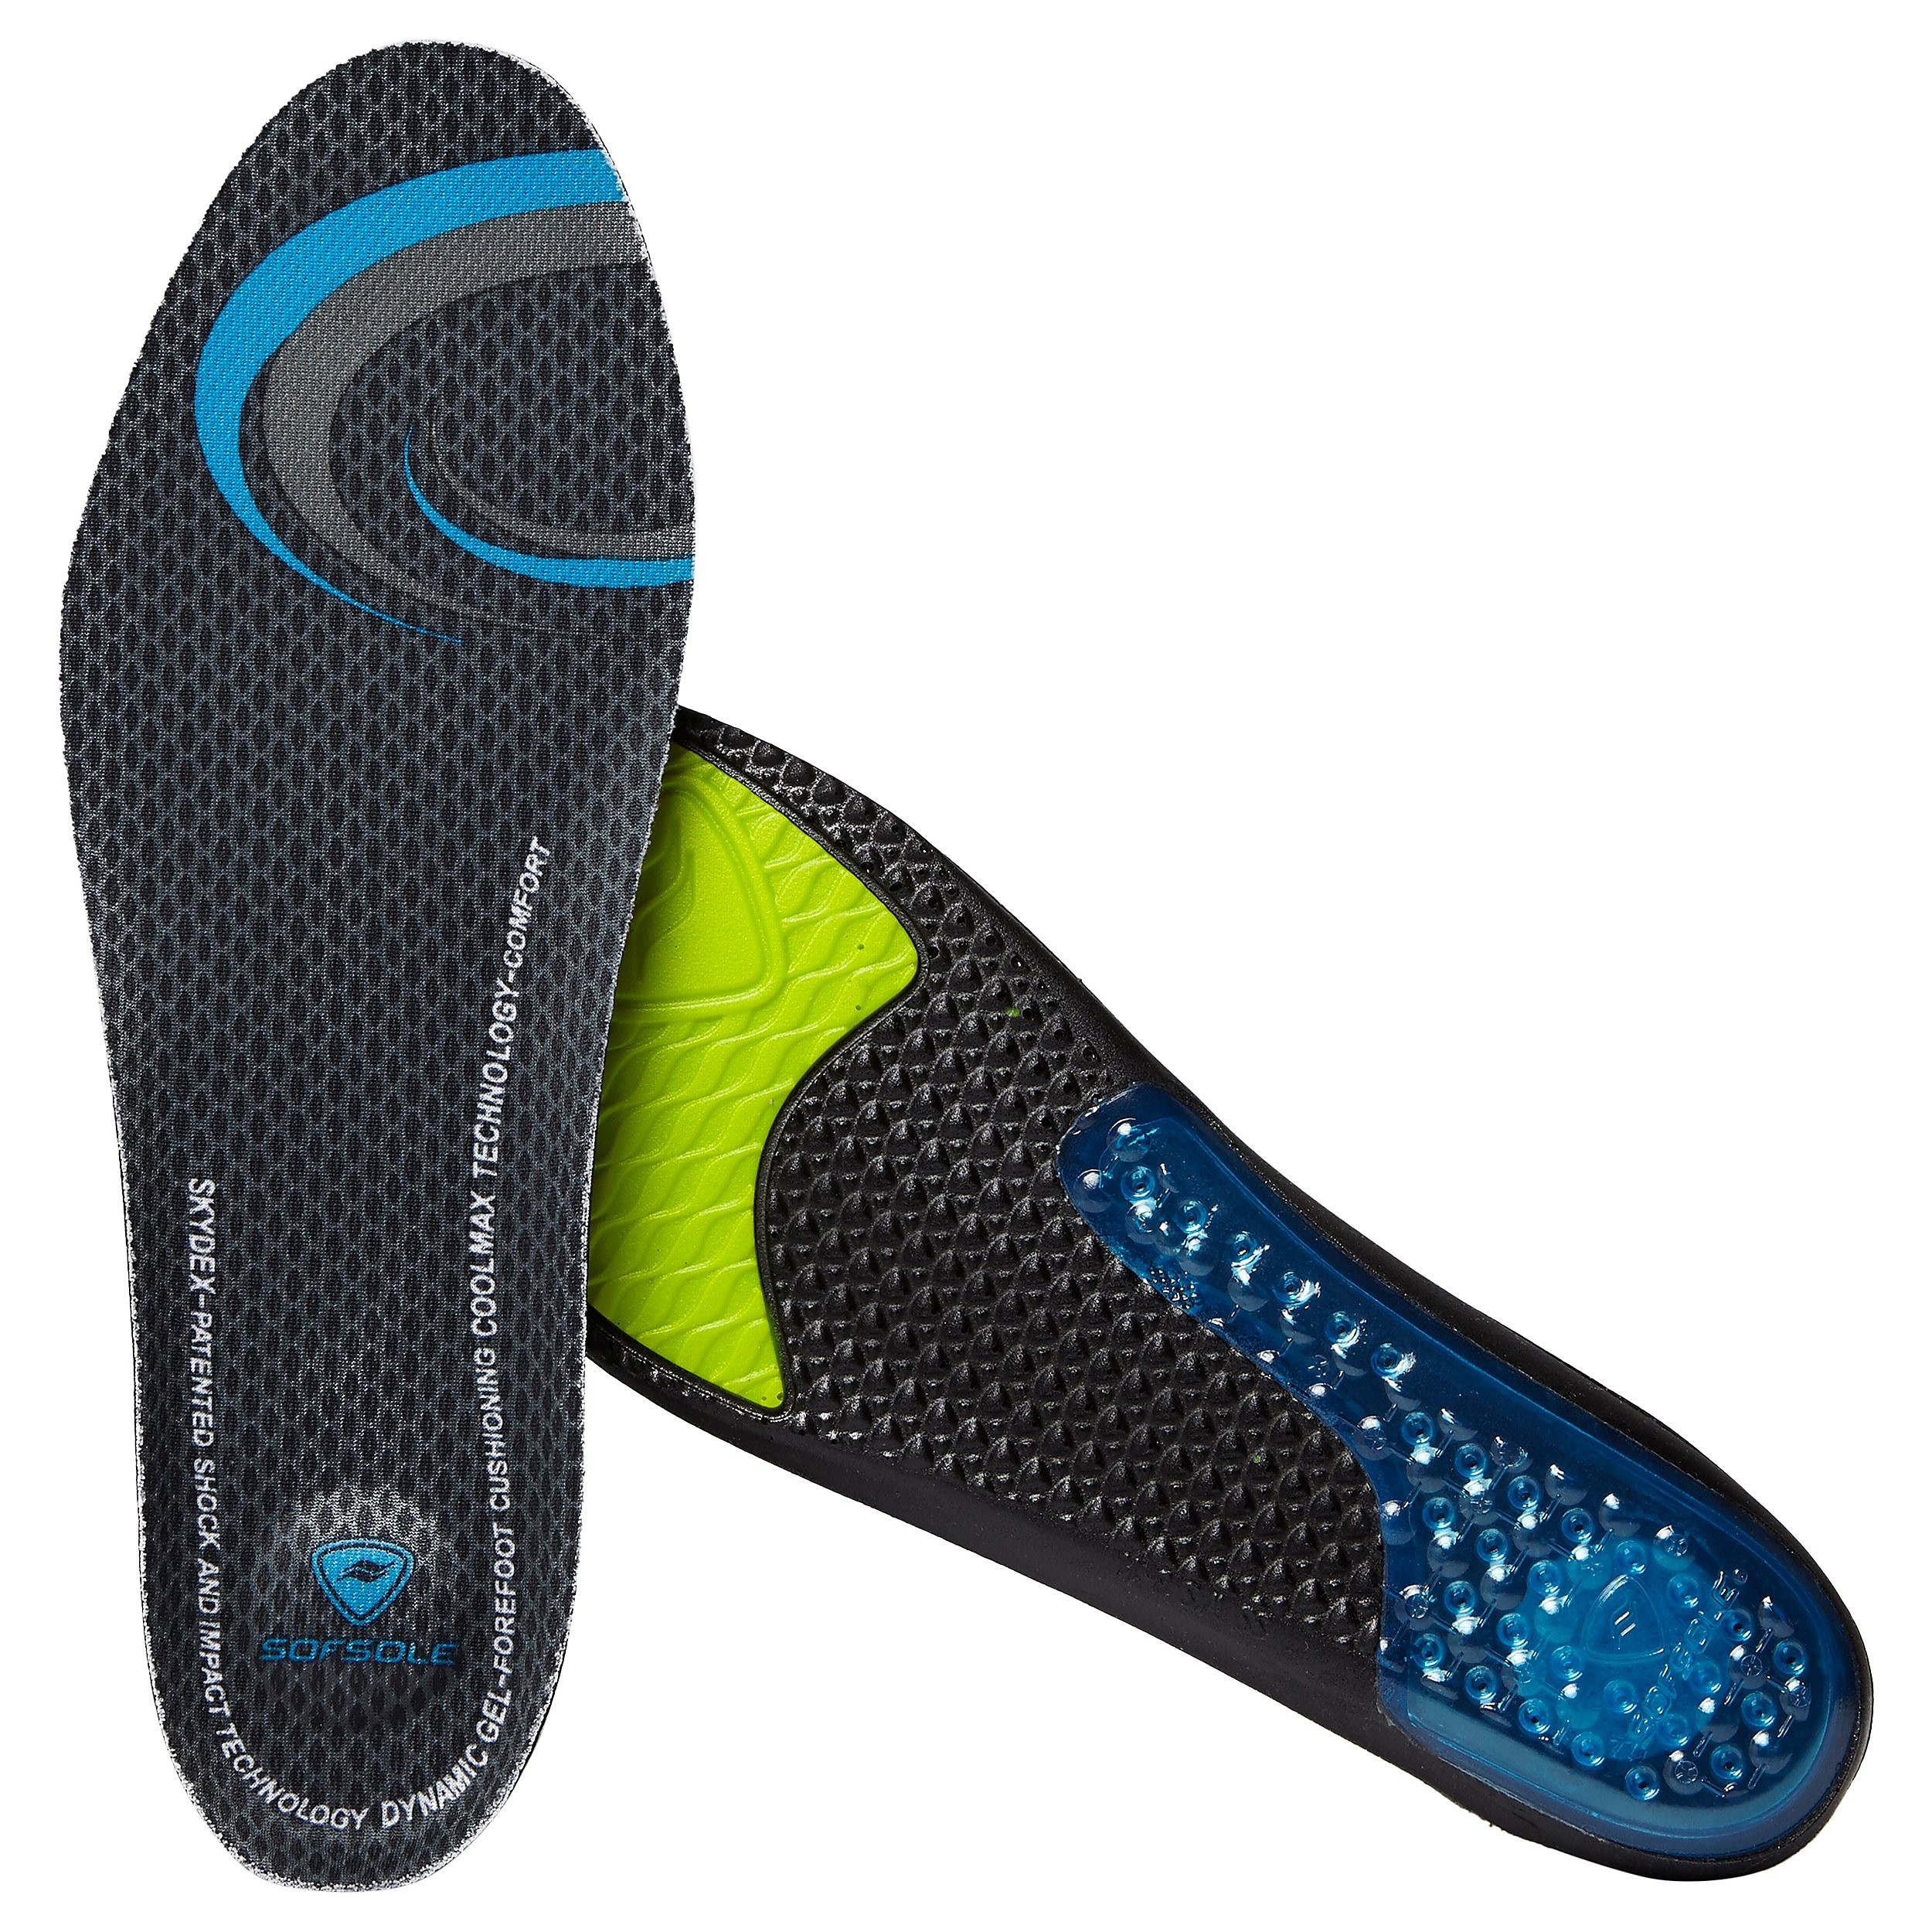 Sof Sole Women's Airr Insoles